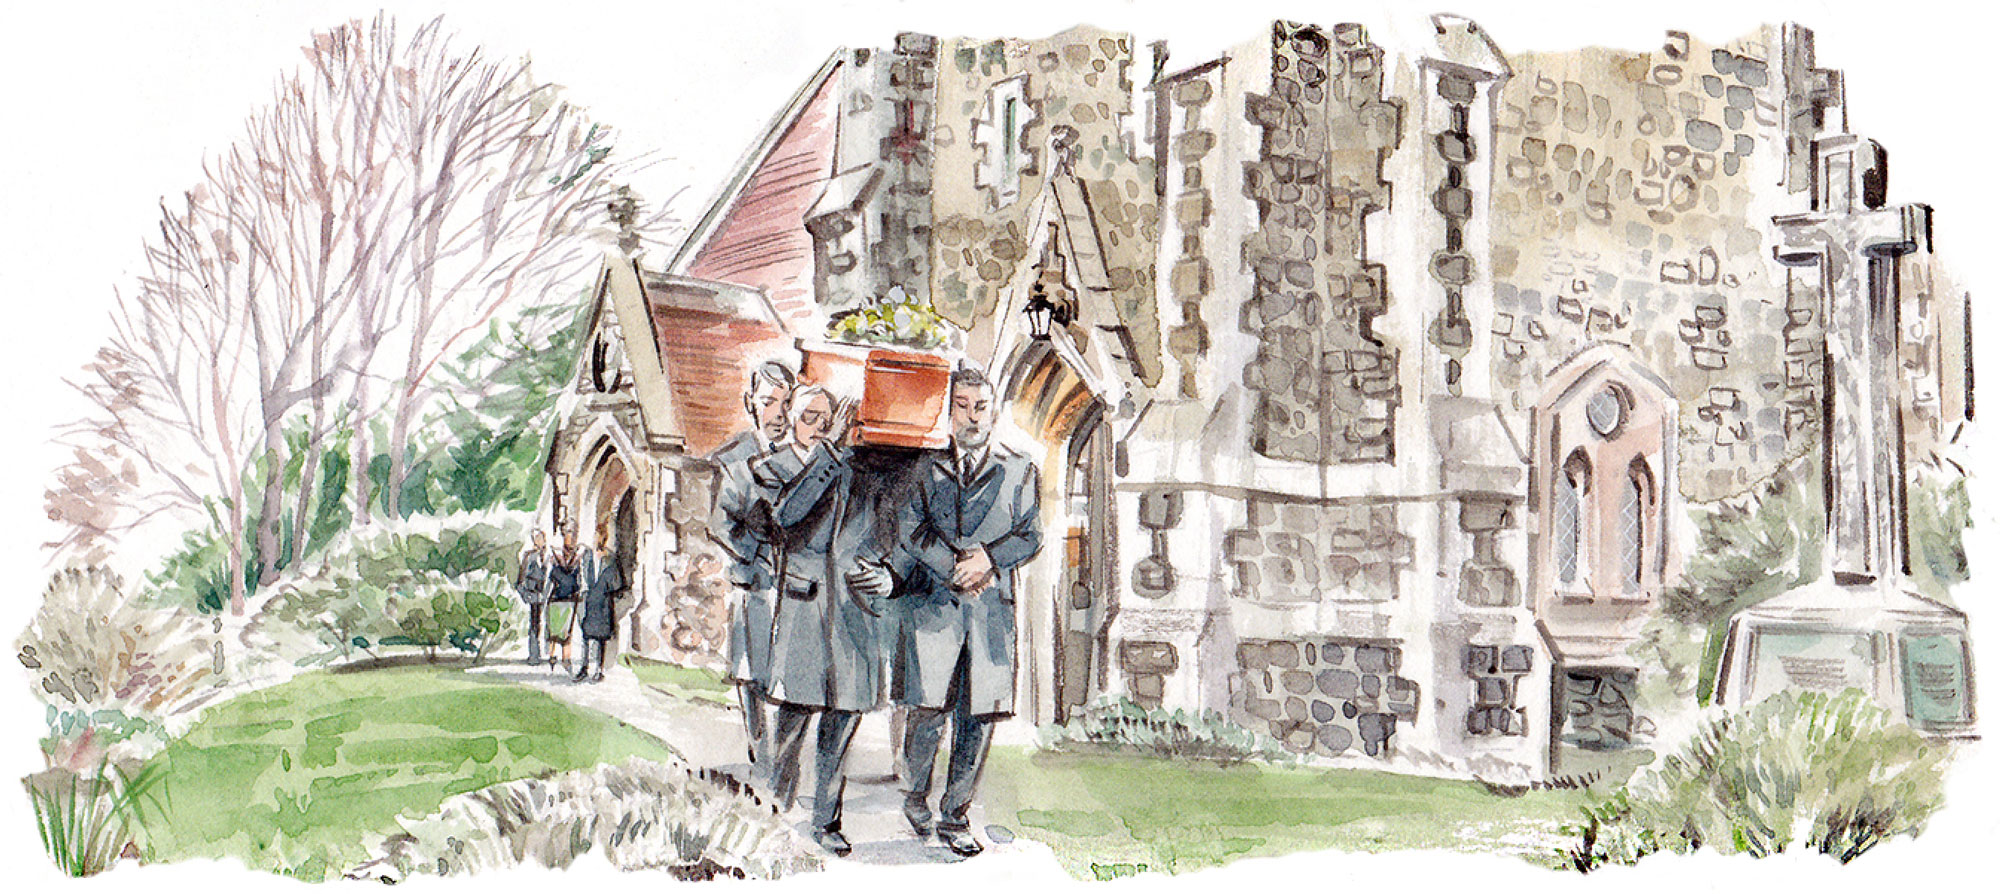 Pallbearers carrying a coffin through a churchyard illustration